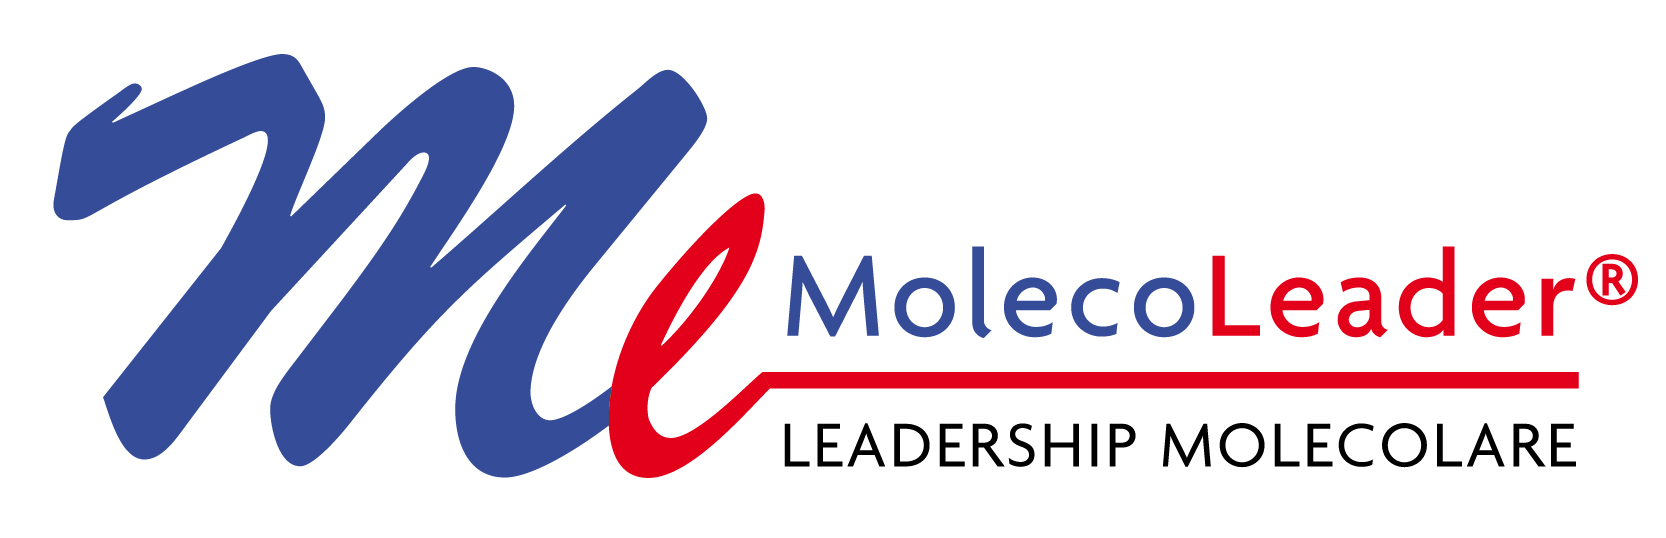 Il MolecoLeader